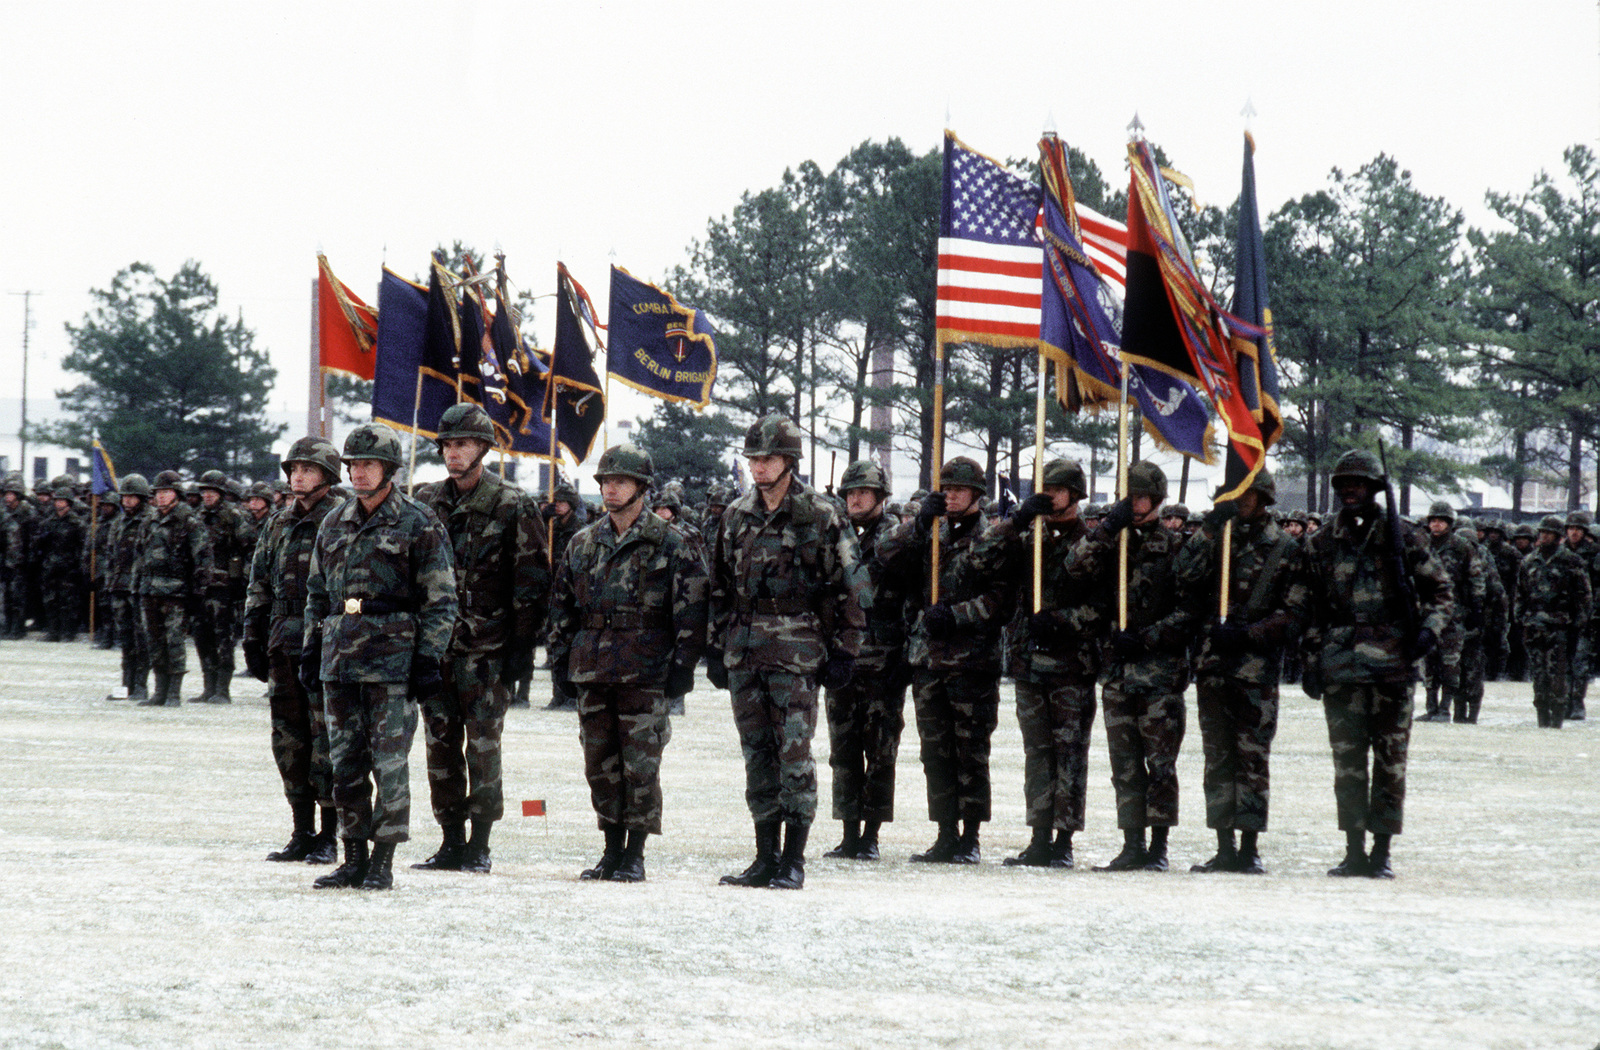 101st Airborne Forward Observer: Members Of The 101st Airborne Division March On The Parade